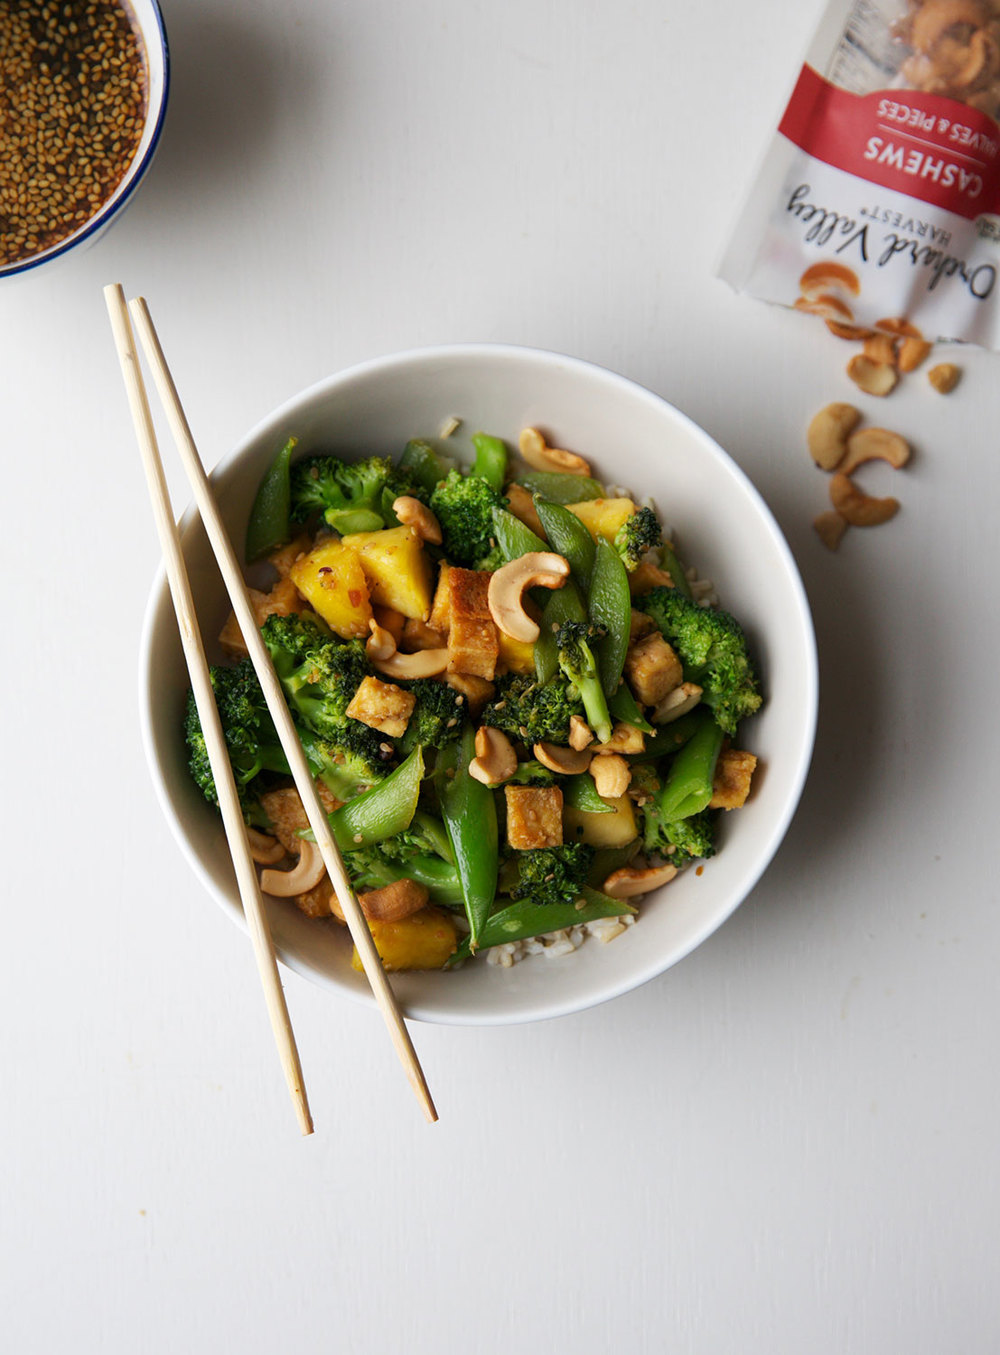 pineapple-broccoli-snap-pea-stir-fry-tofu